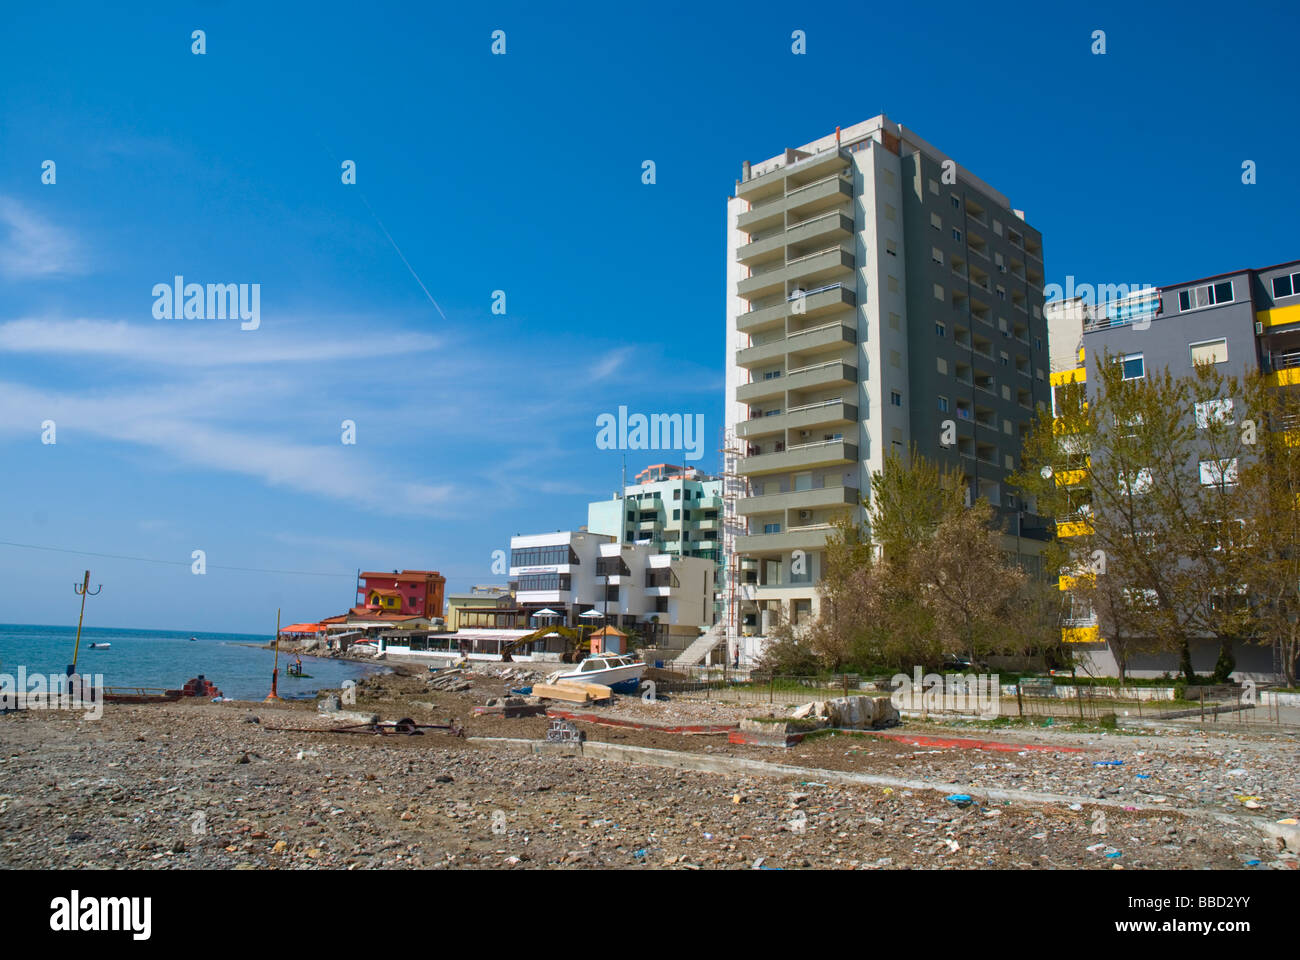 Polluted city beach of Durres Albania Europe - Stock Image